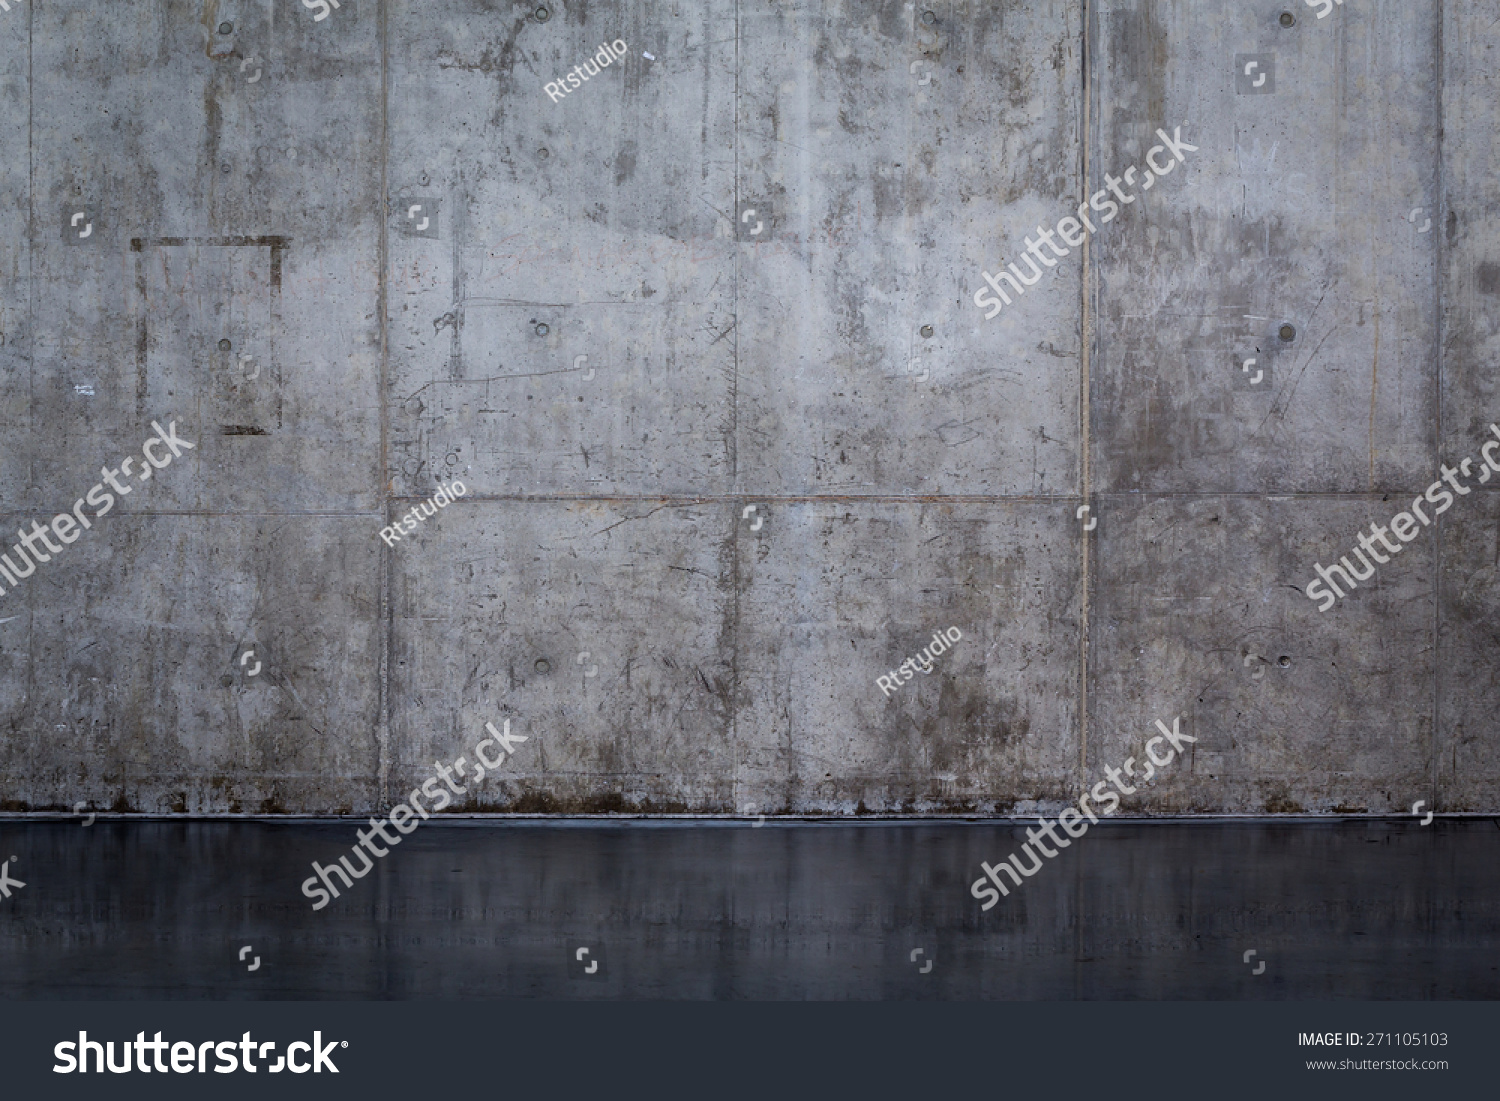 Smooth Cement Wall : Grungy smooth bare concrete wall background stock photo